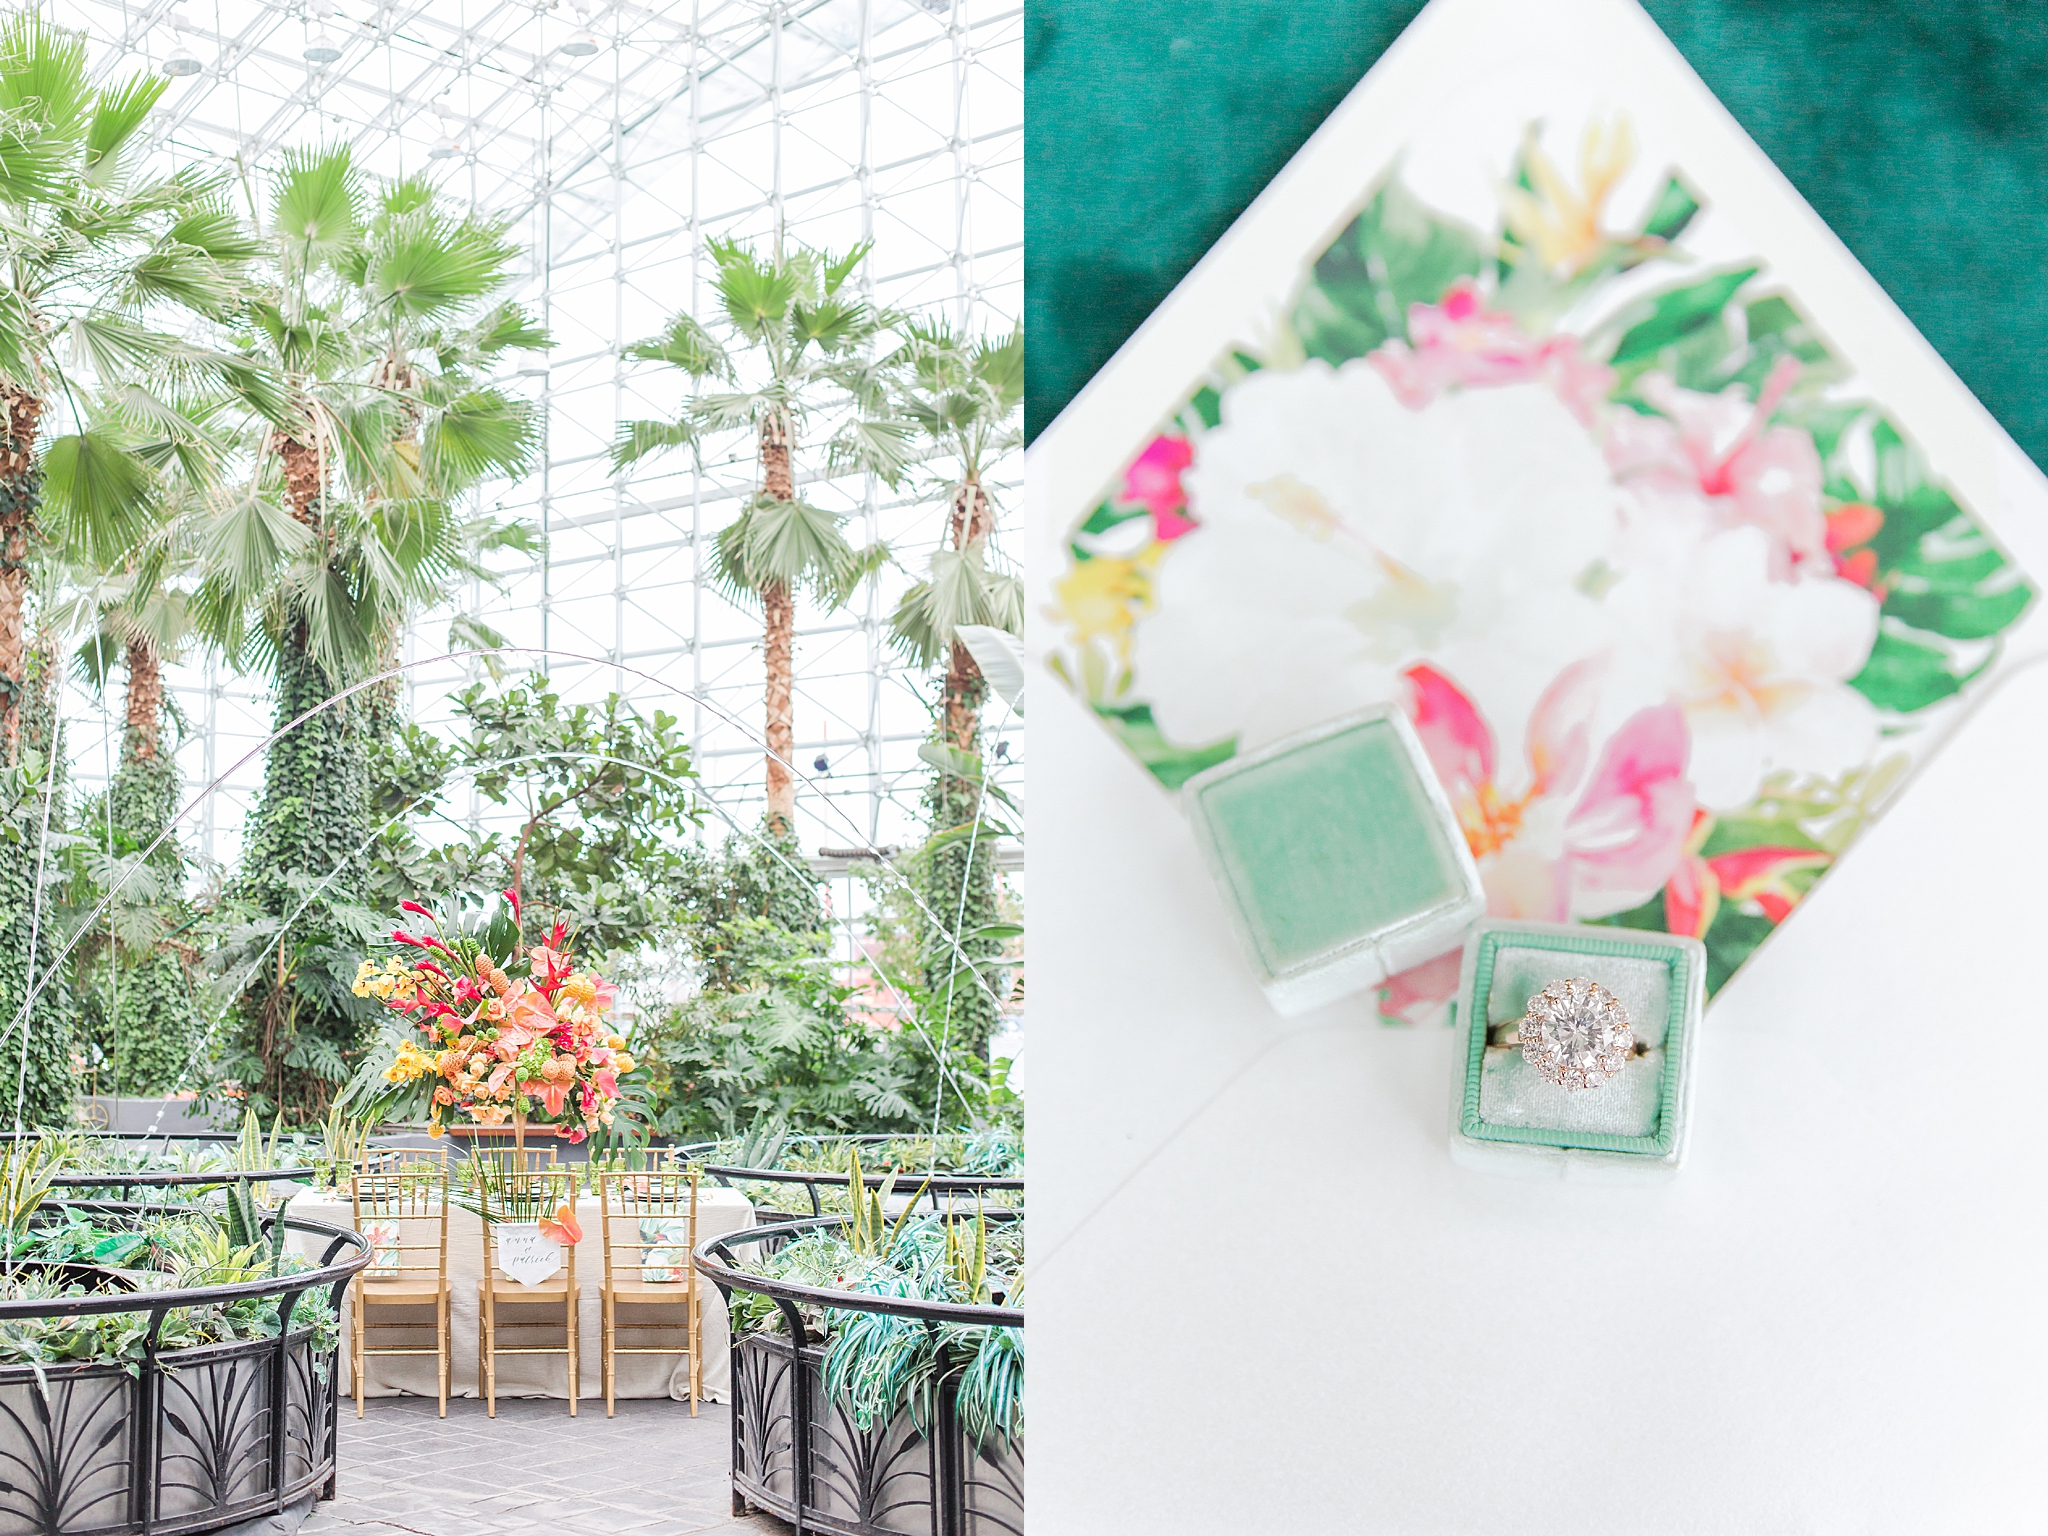 colorful-tropical-wedding-photos-at-the-crystal-gardens-in-chicago-illinois-by-courtney-carolyn-photography_0002.jpg